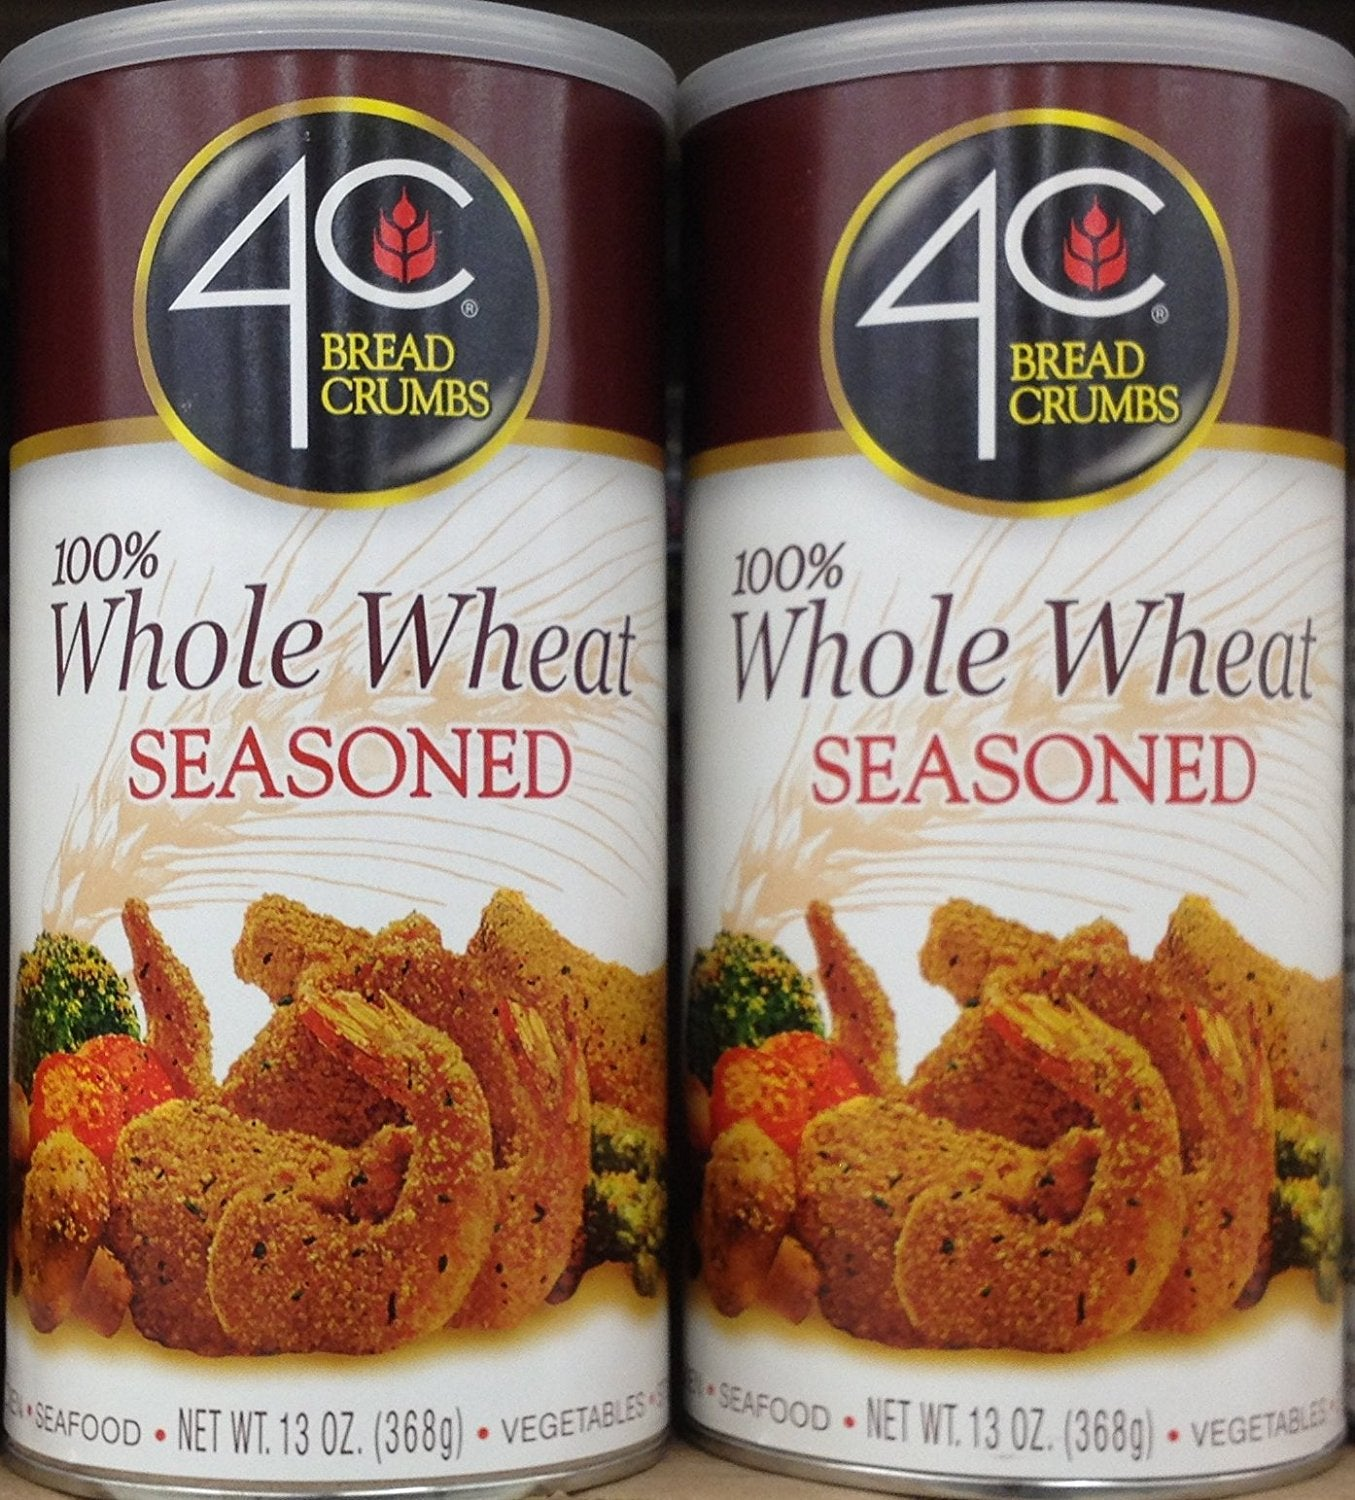 4C 100% Whole Wheat Seasoned BREAD CRUMBS 13oz (2 Cans) - Buy Fast delivery